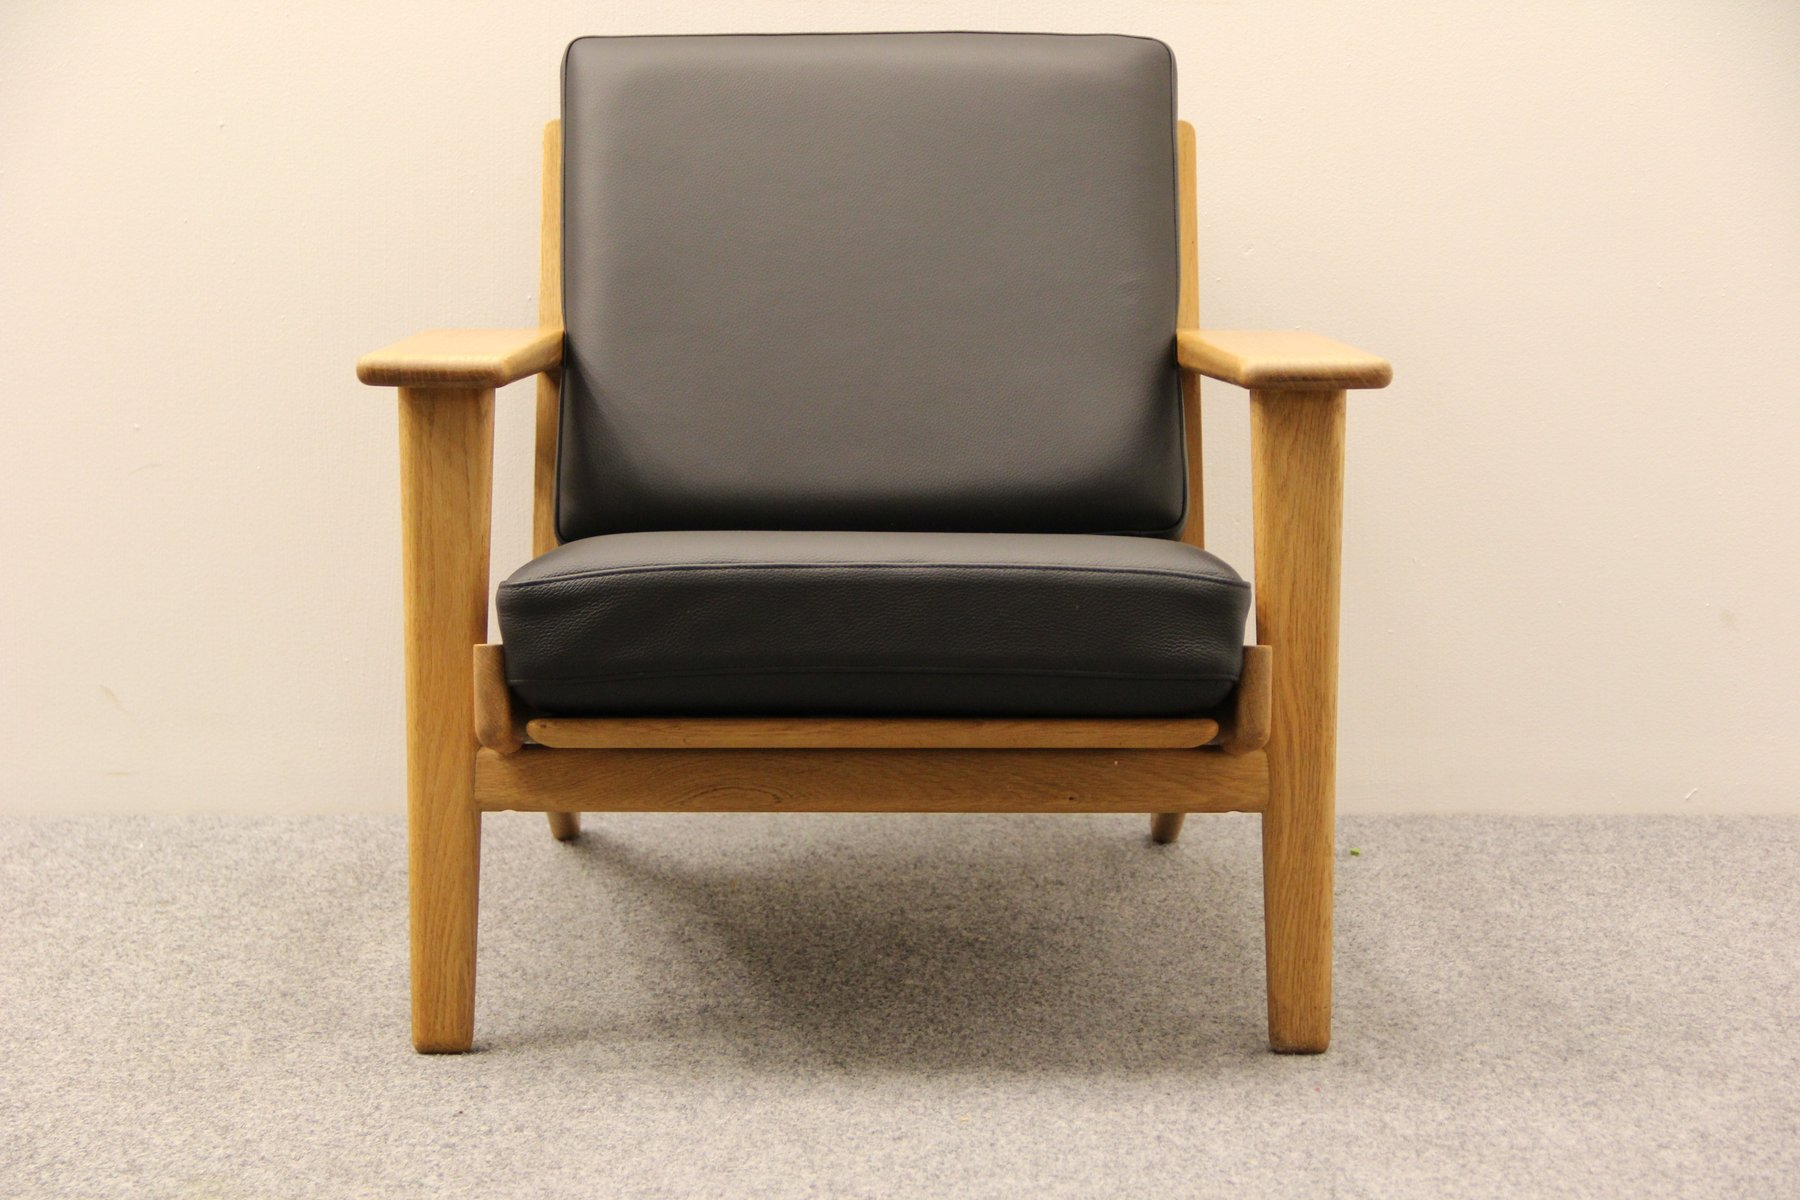 Black Leather GE 290 Easy Chair by Hans J Wegner for Getama for